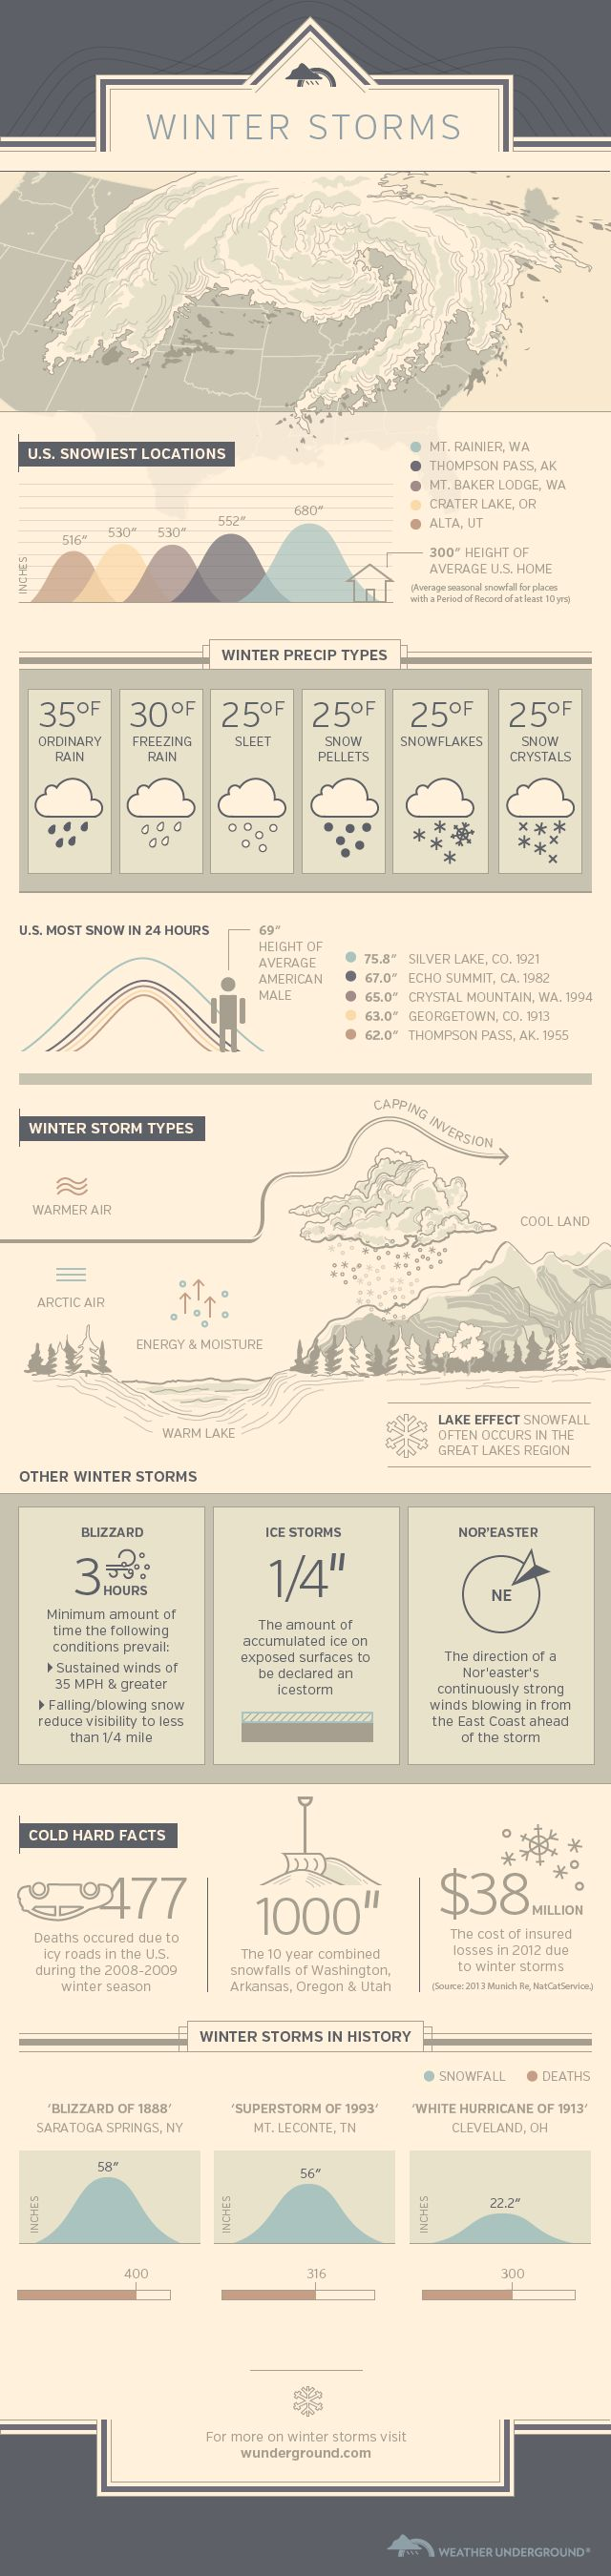 Nor'easters, lake effect, blizzards! Snow higher than the average U.S. house! It's all here in this Winter Storms infographic by Weather Underground